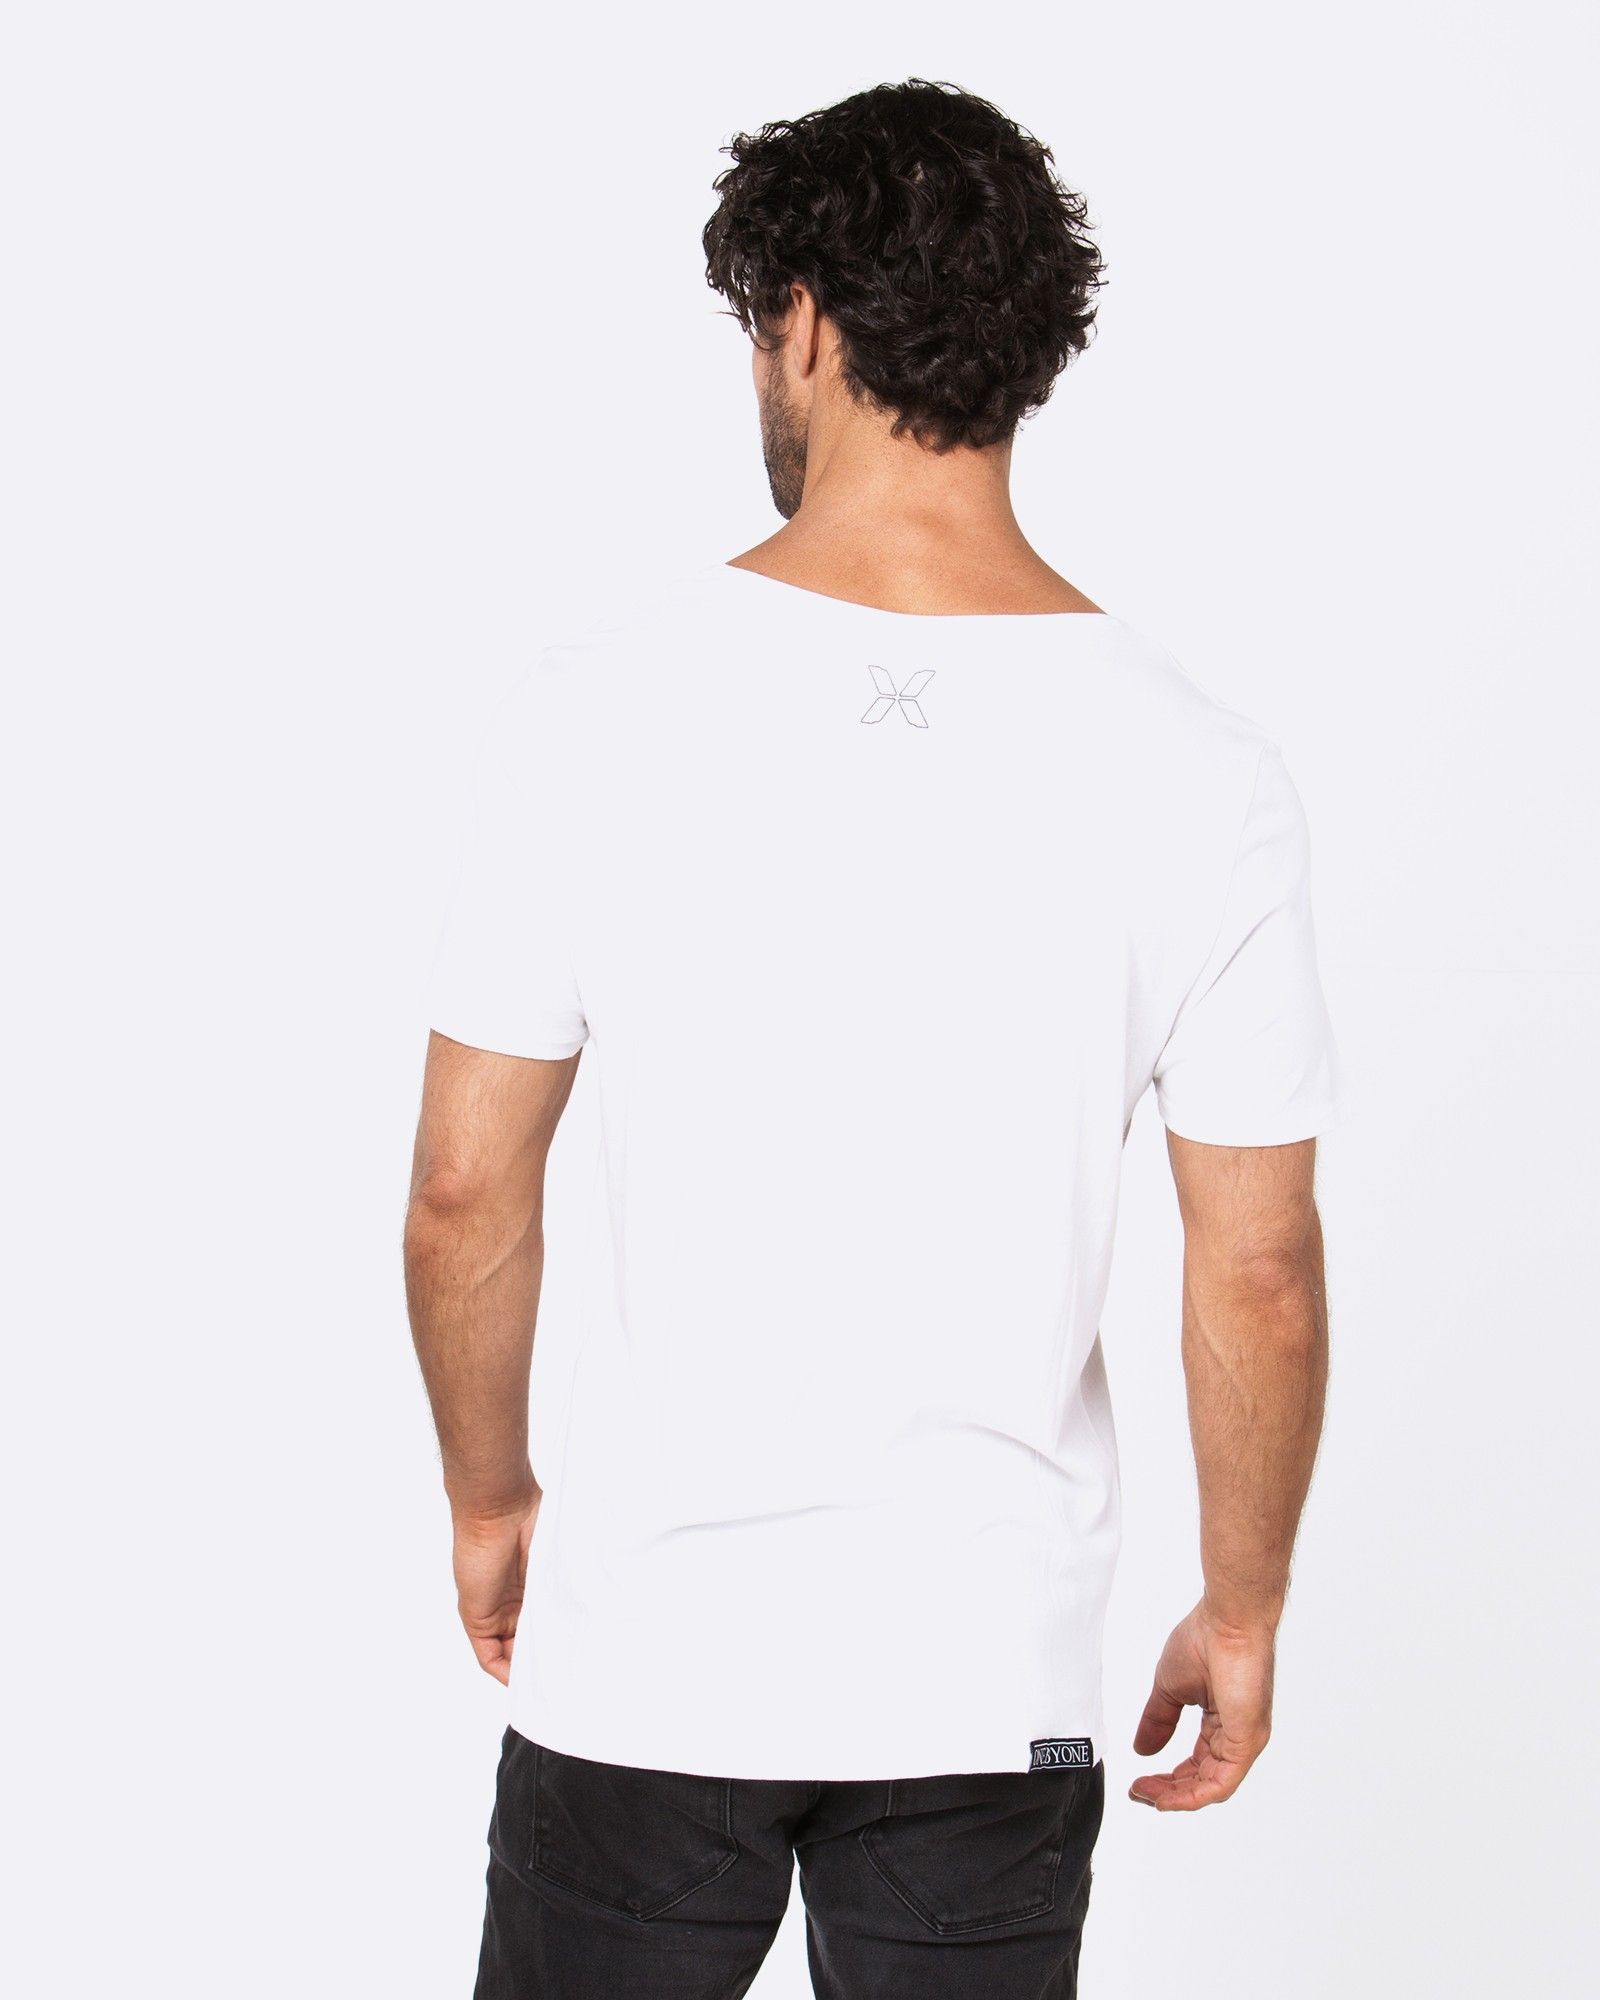 QUARTER BACK WHITE TEE